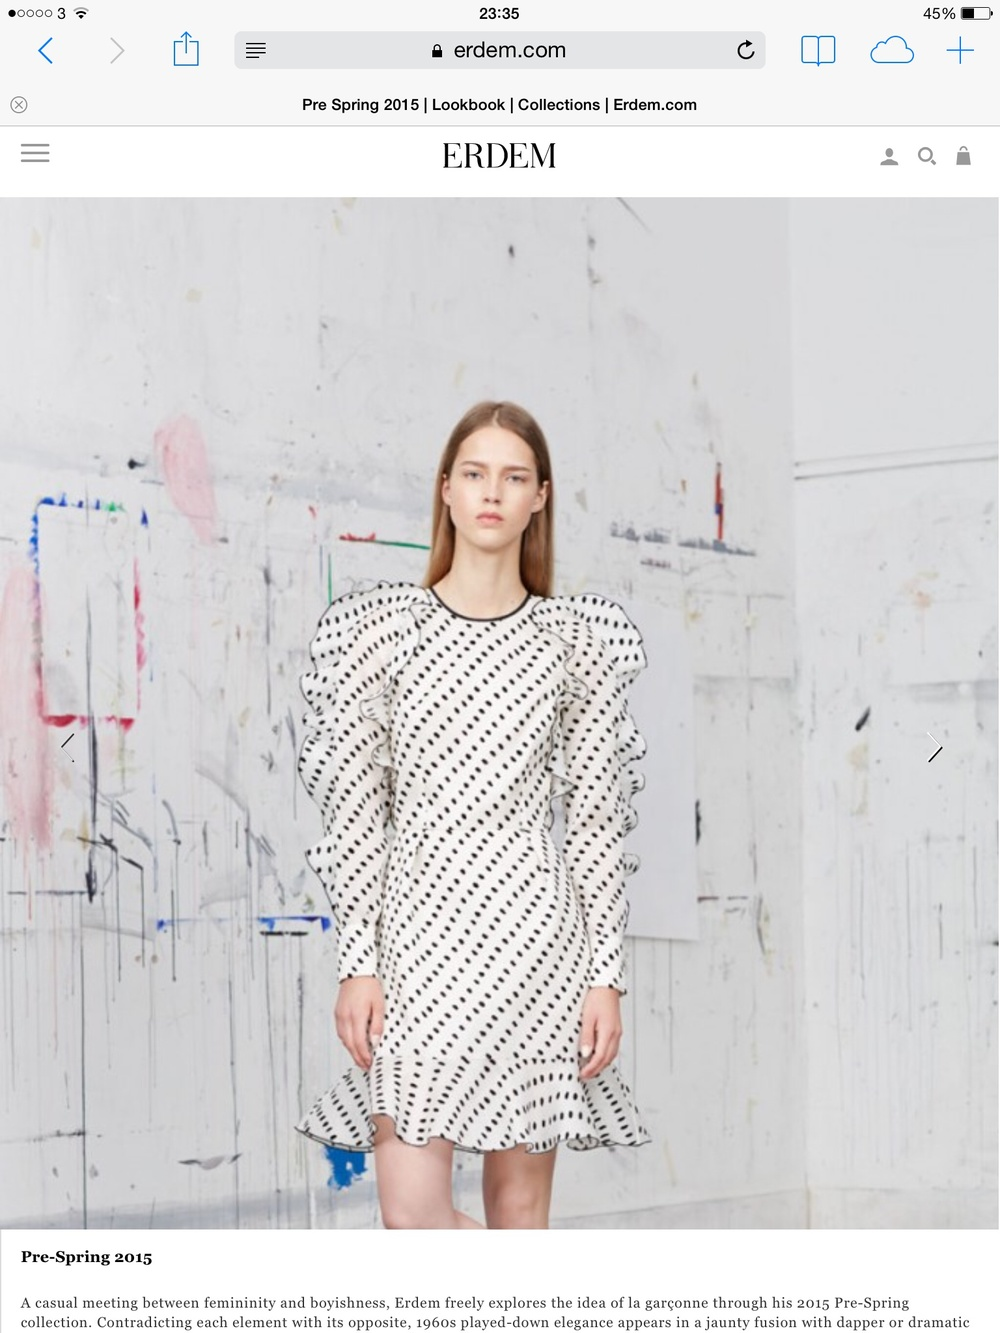 screenshot from Erdem.com pre-Spring 2015